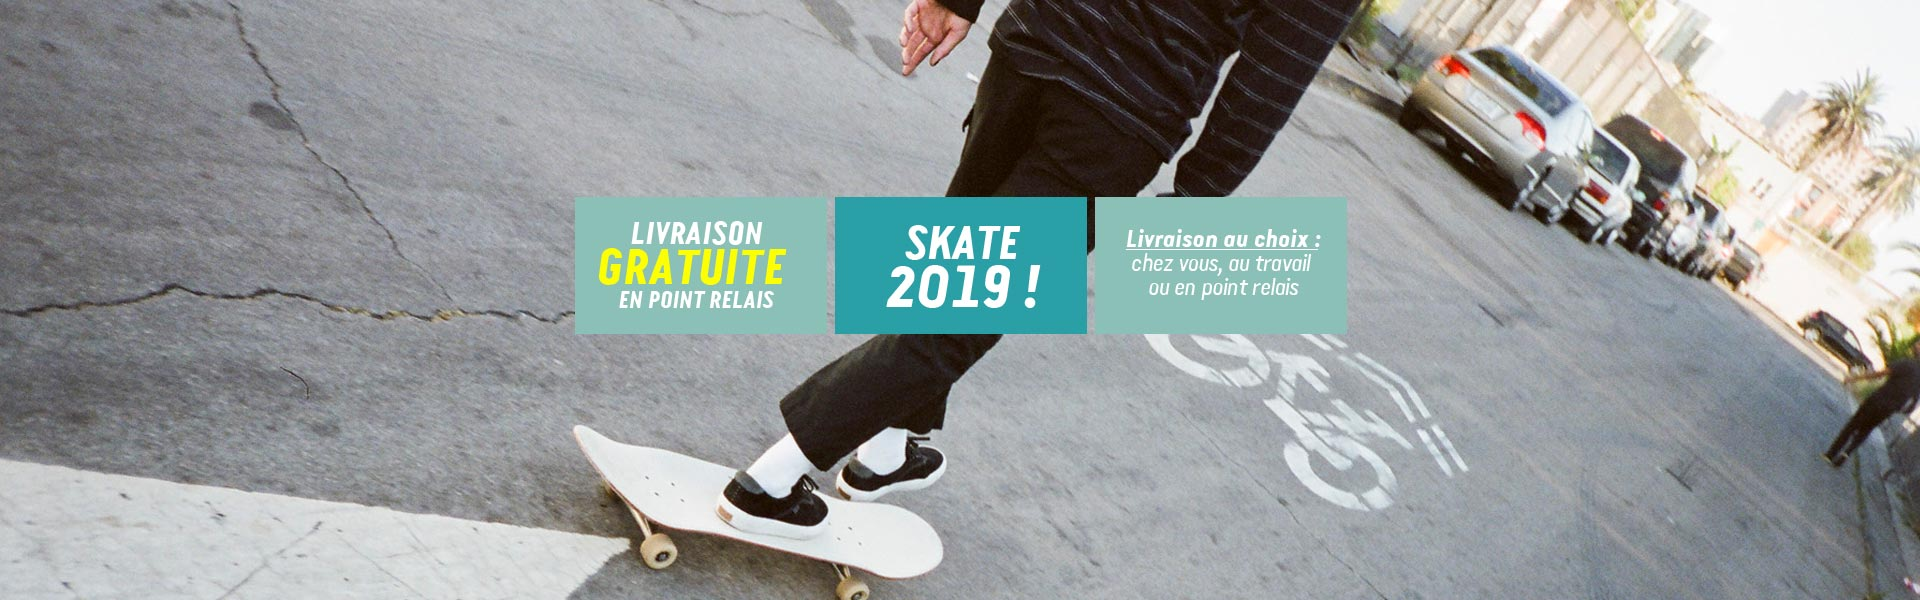 collection skate 2019